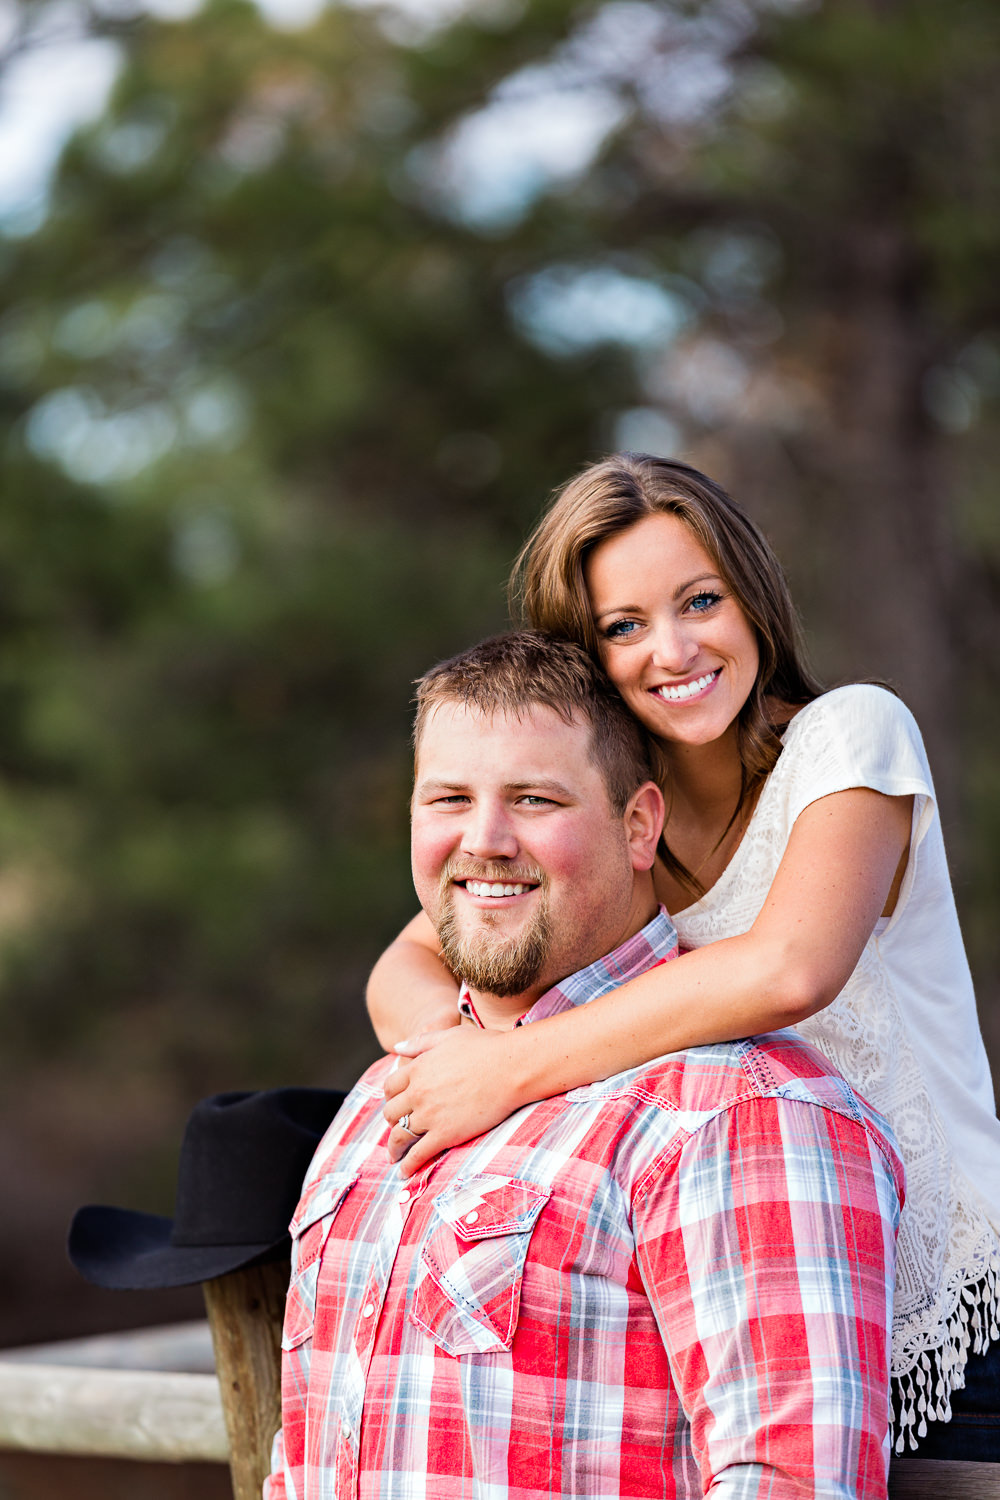 billings-montana-engagement-session-woman-stands-on-fence-behind-man.jpg